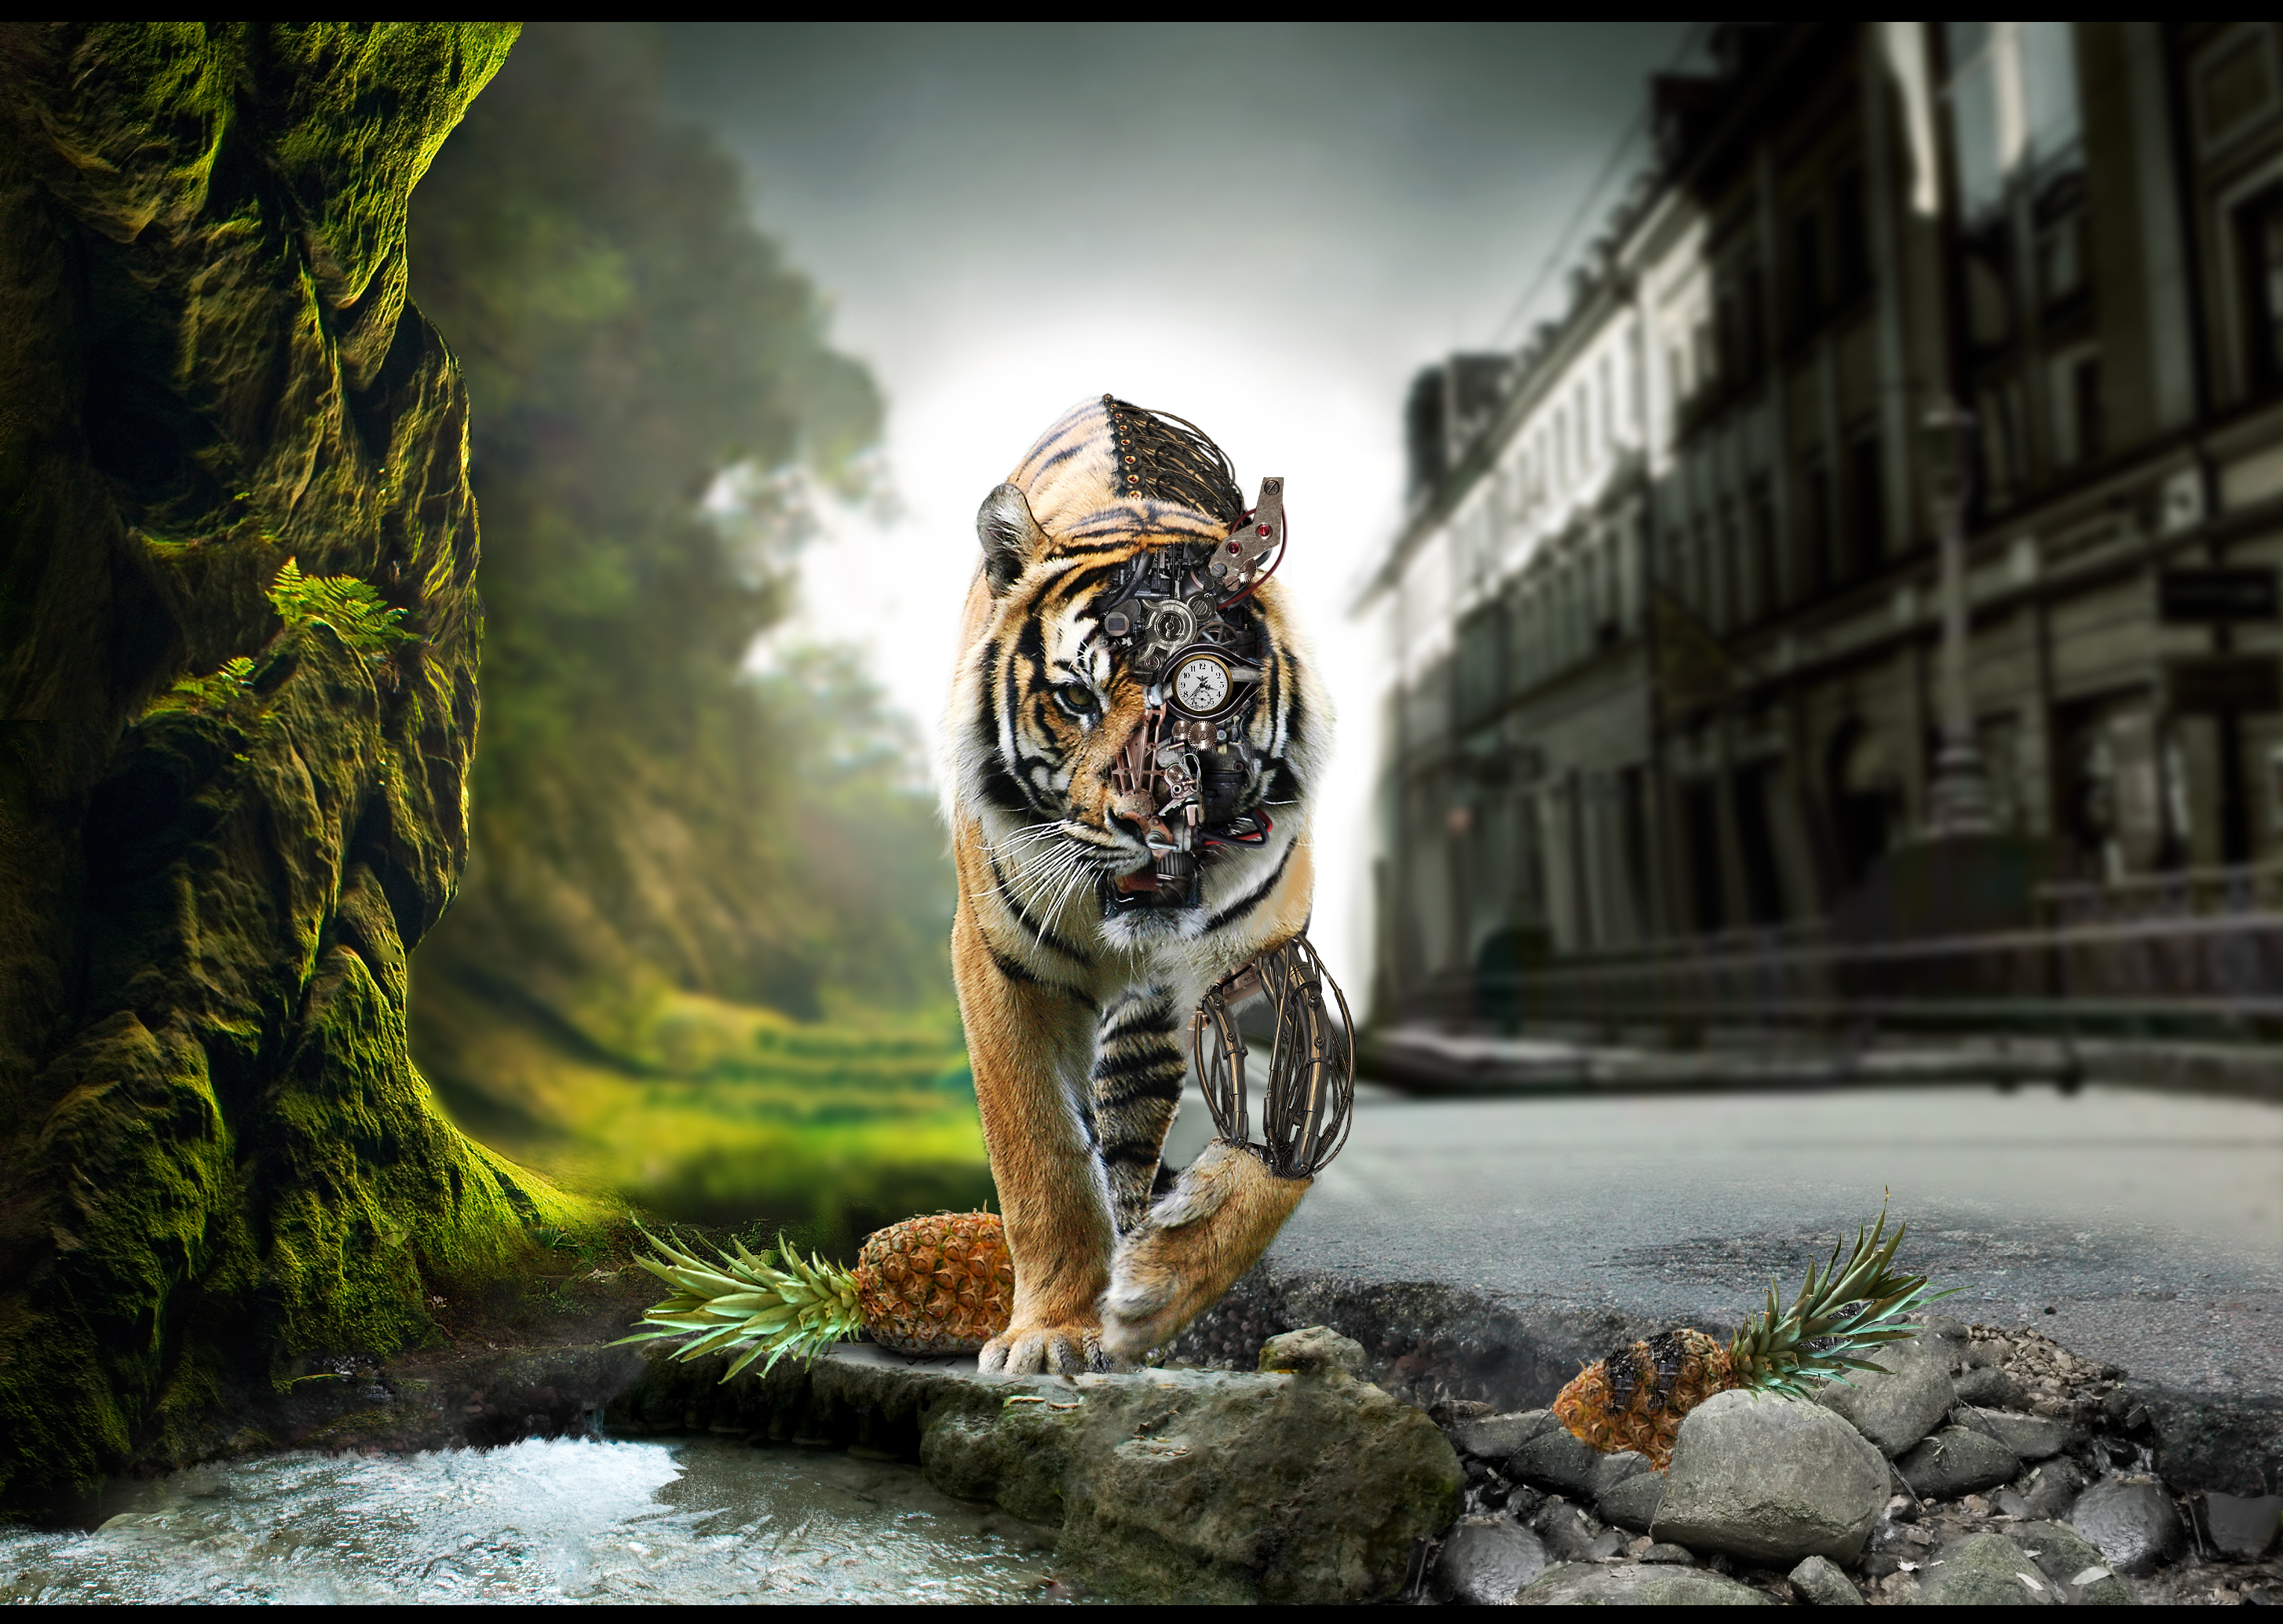 13942 Screensavers and Wallpapers Robots for phone. Download Animals, Art, Robots, Tigers pictures for free